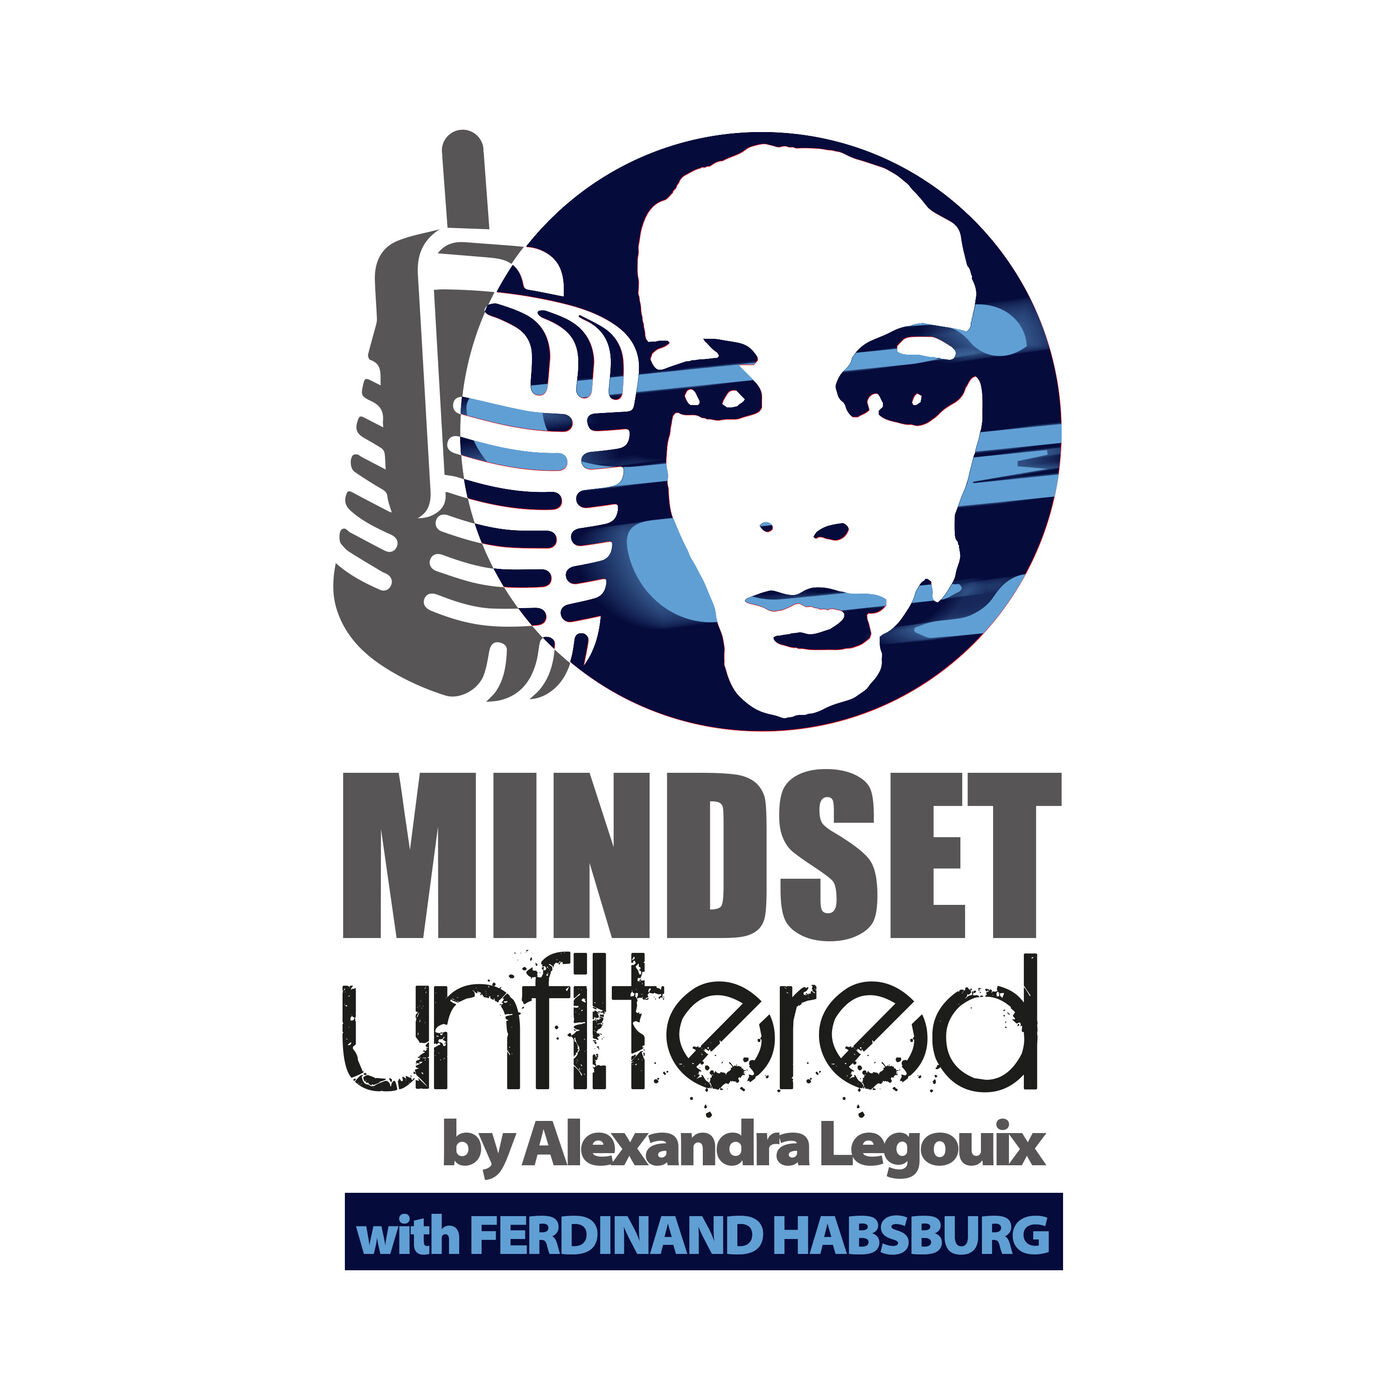 S5 E7: His Imperial and Royal Highness, Ferdinand Habsburg - on motor racing, religion, meditation, mental health, mindset and sustainability